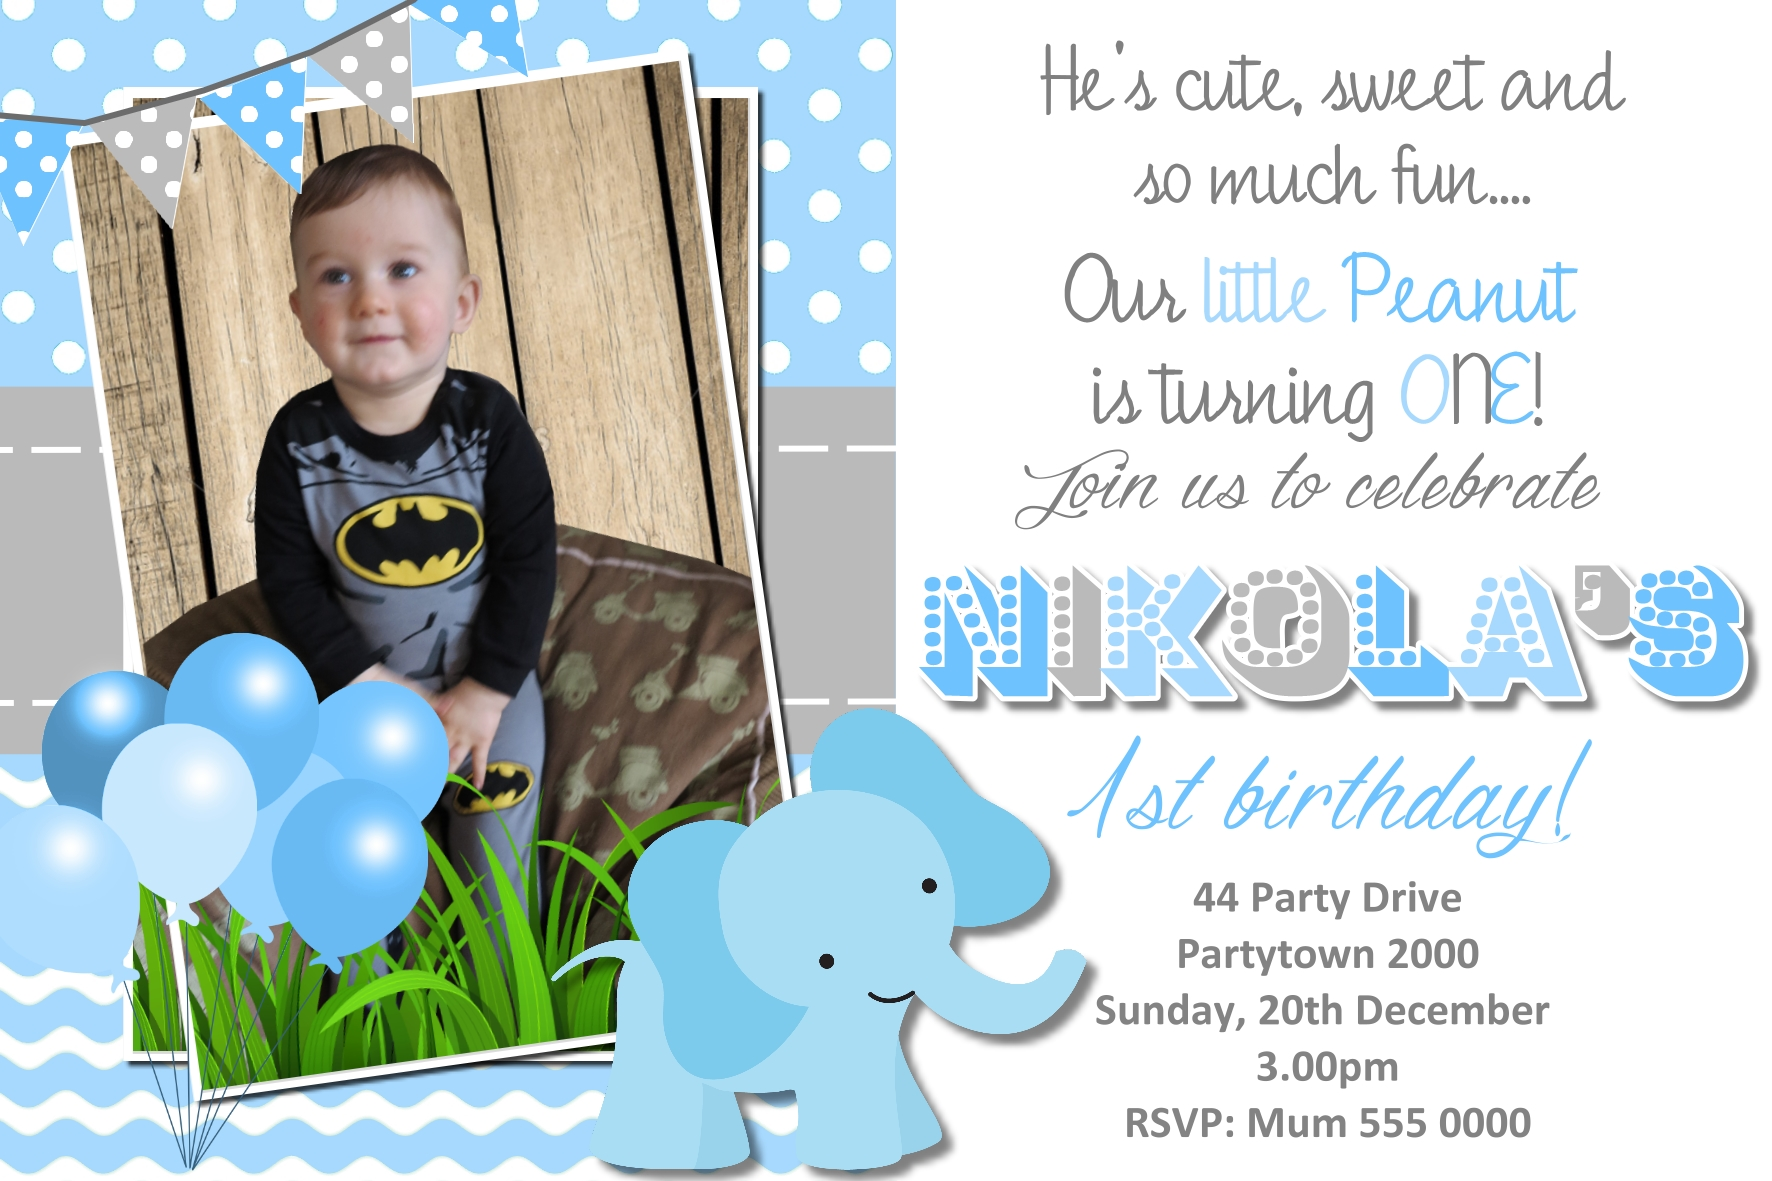 Cute first birthday invitation funnyshots party invitations cute first birthday invitation filmwisefo